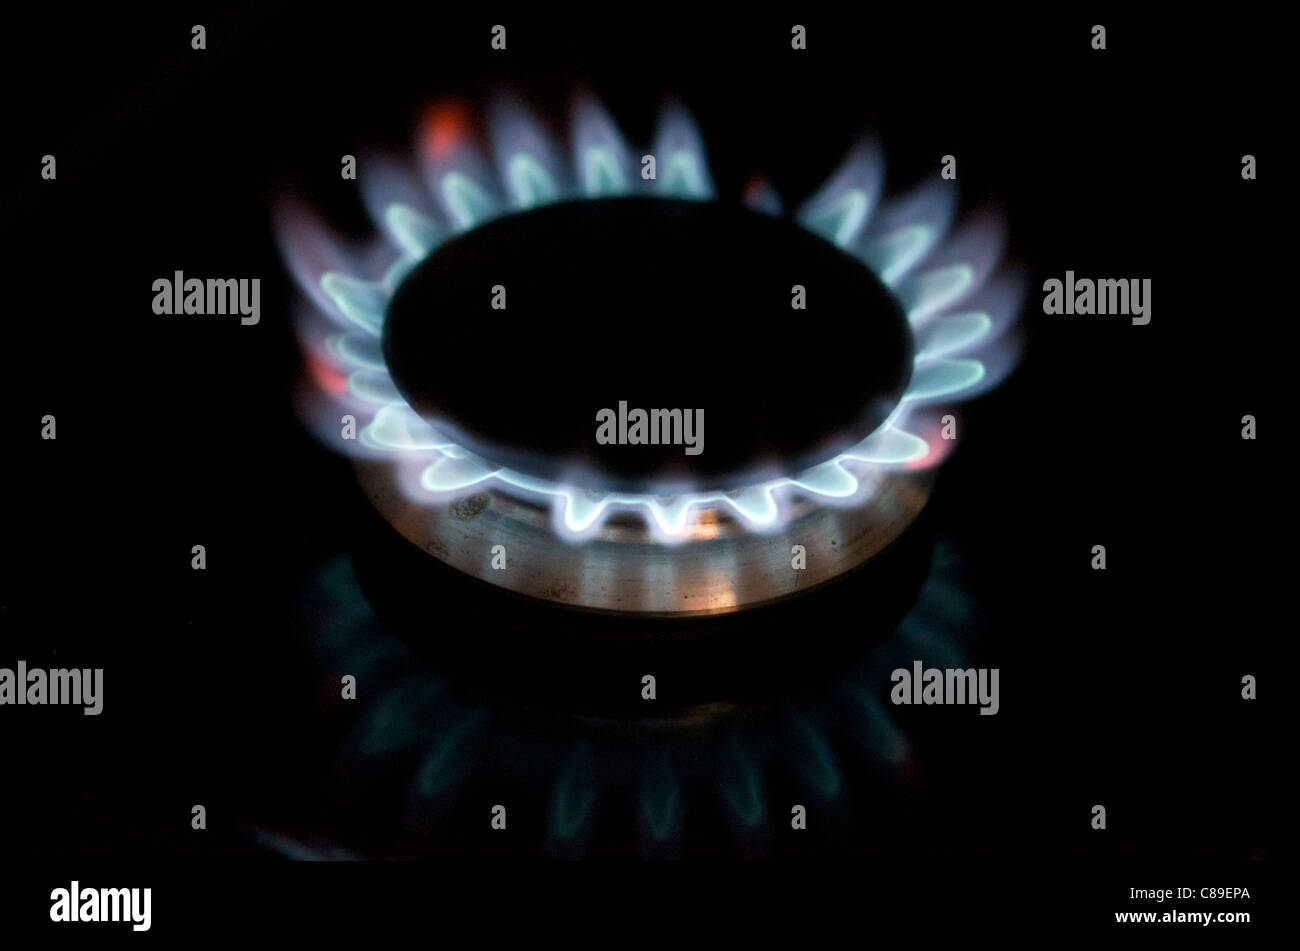 gas-ring-on-cooker-C89EPA.jpg